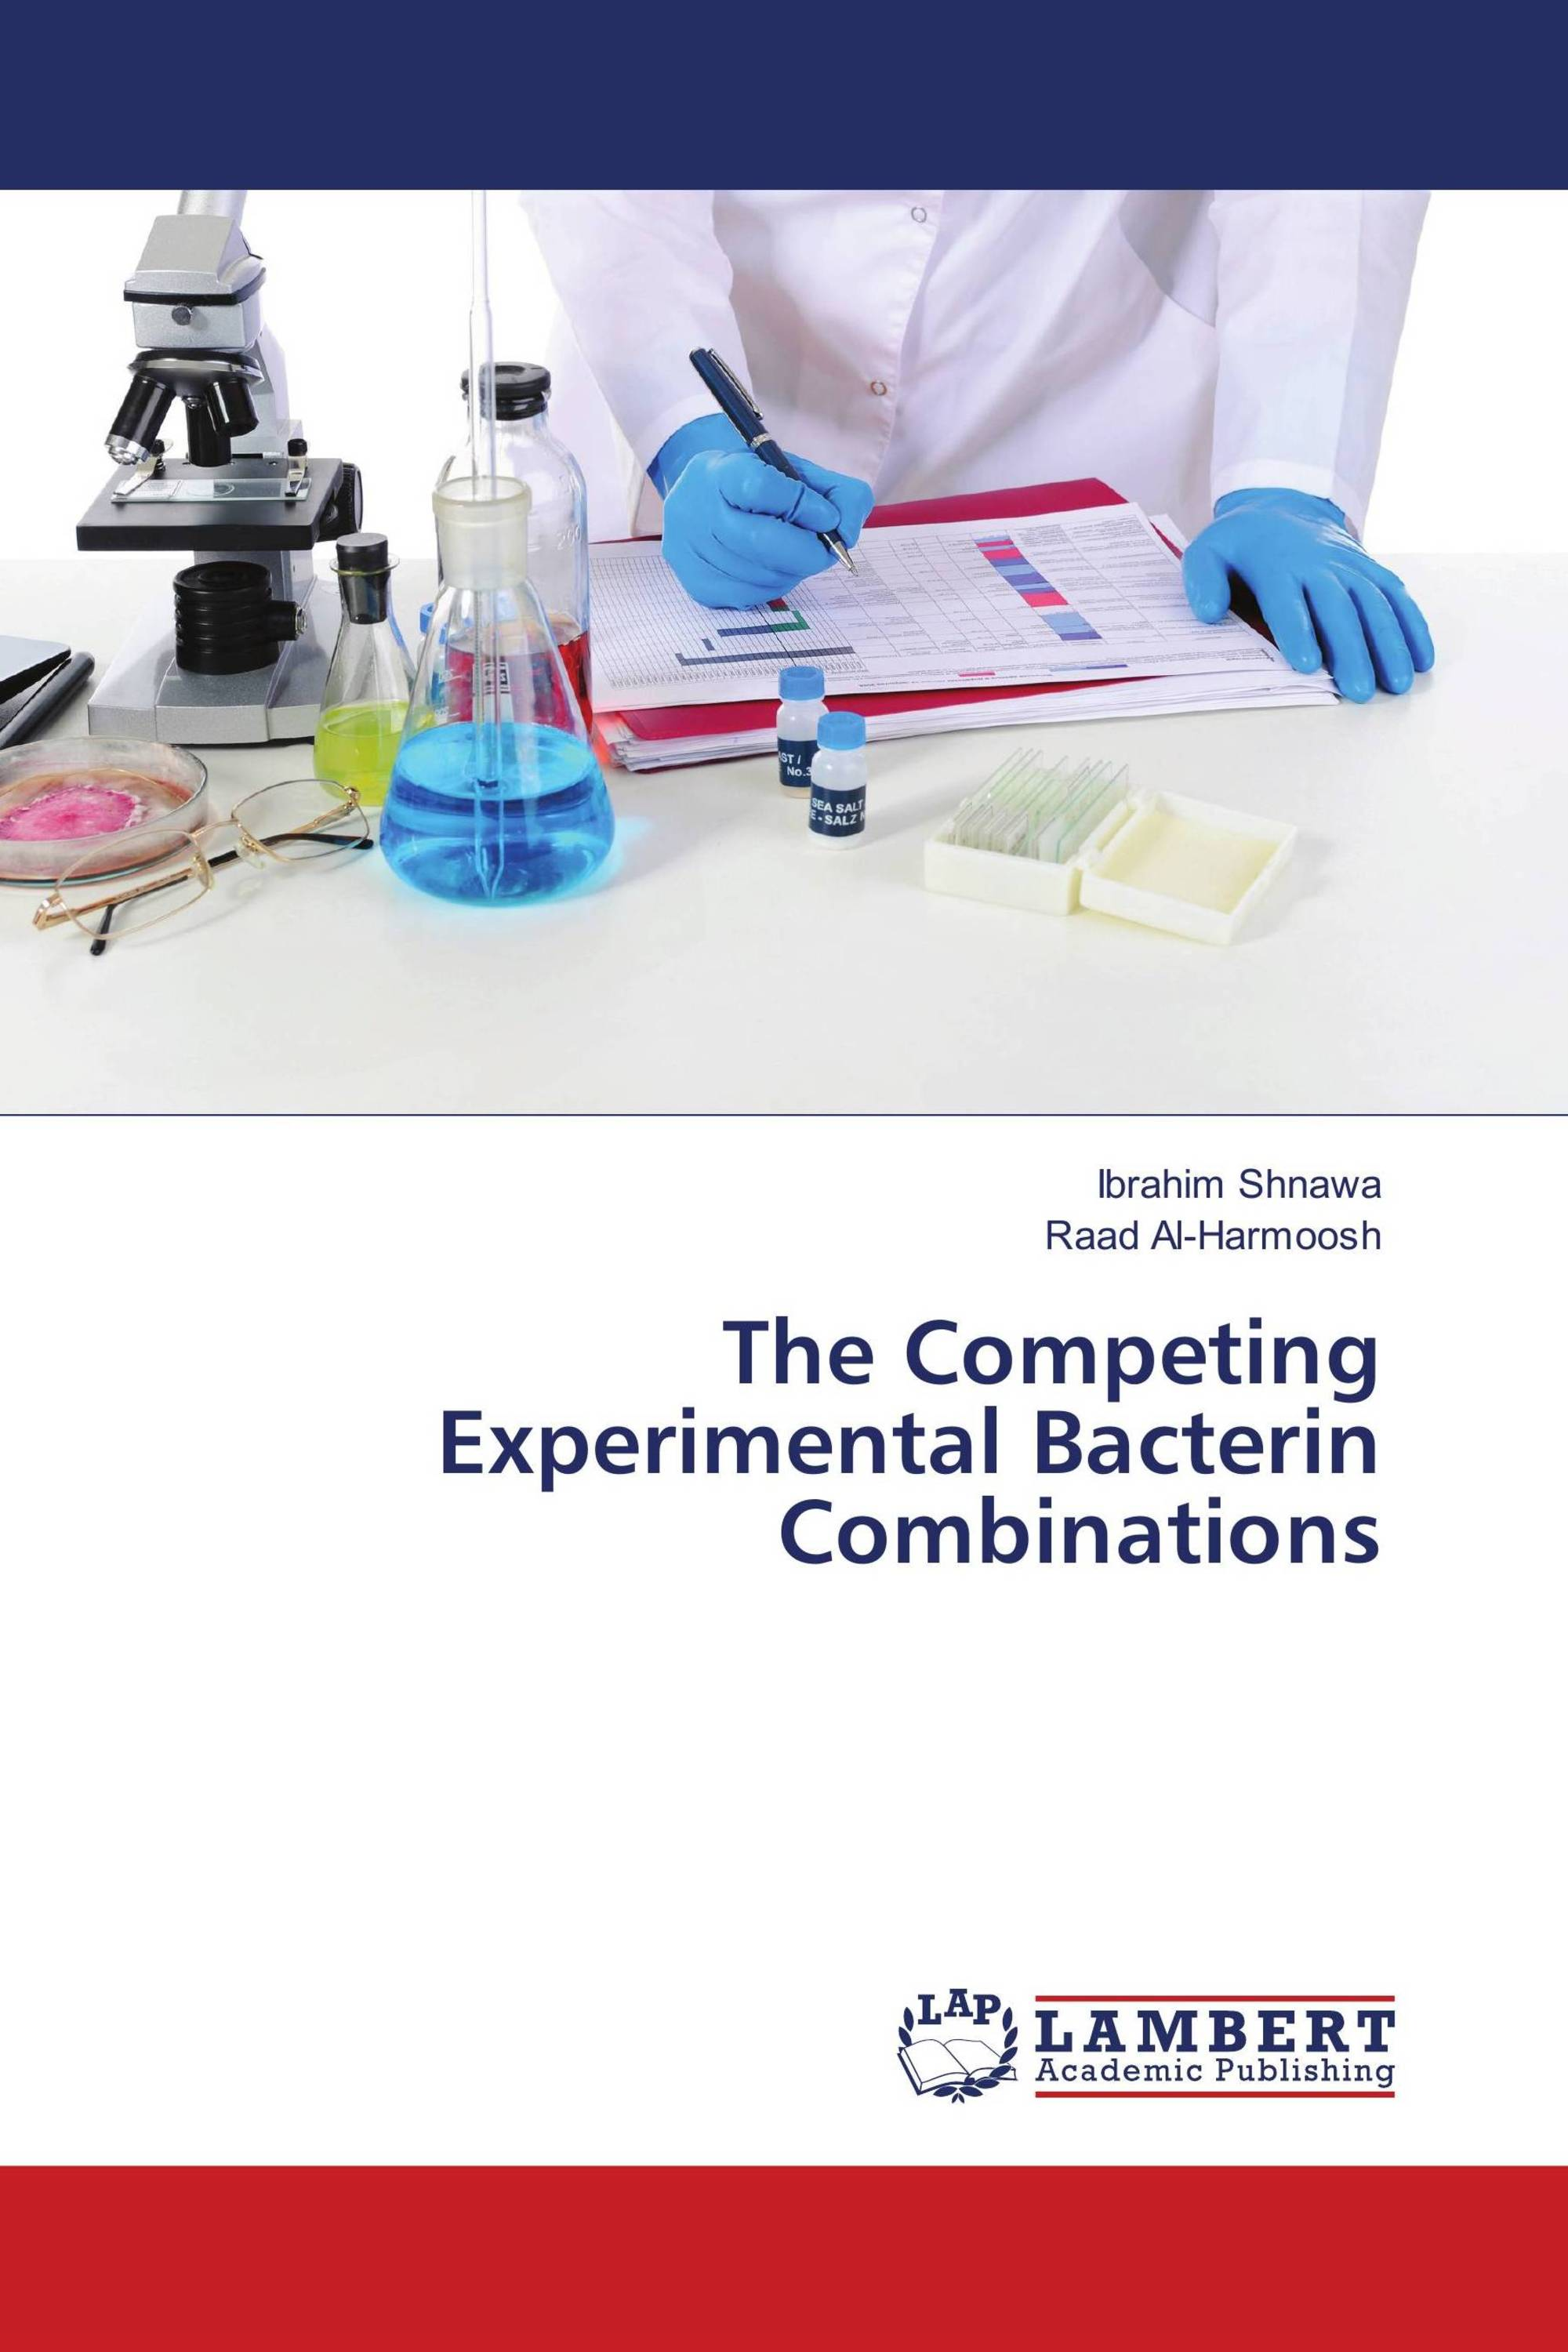 The Competing Experimental Bacterin Combinations